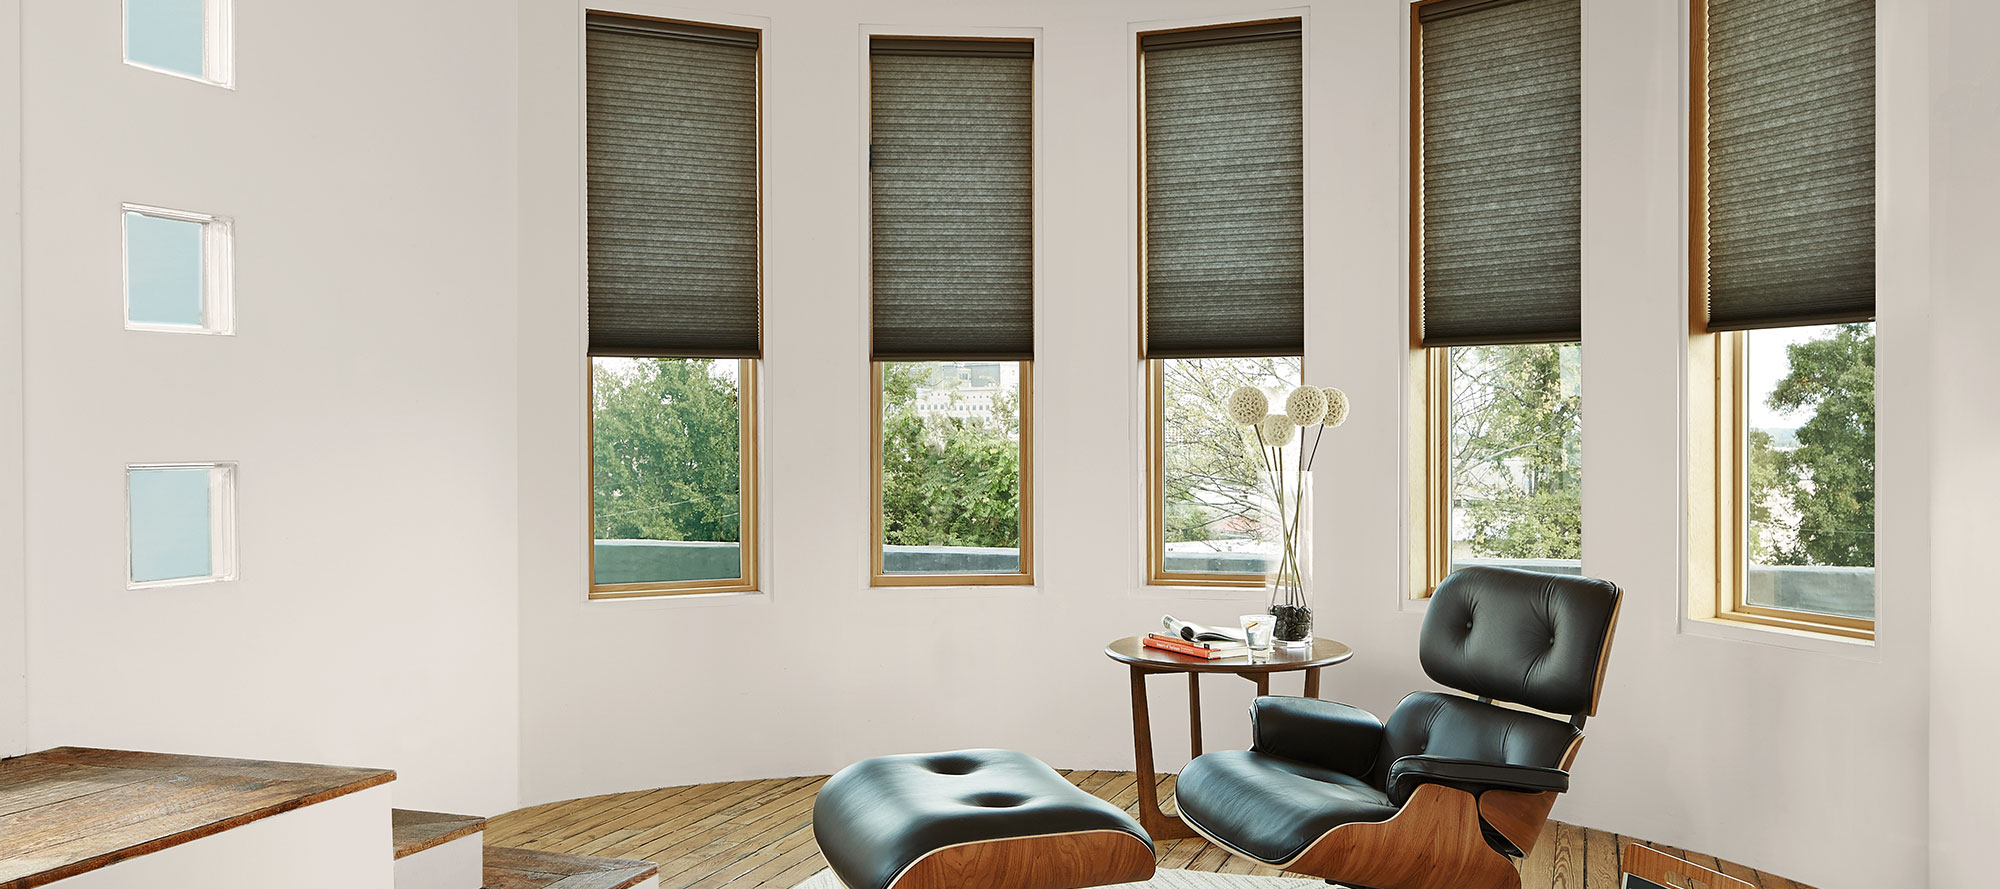 Exterior: Window Coverings, Blinds & Shades